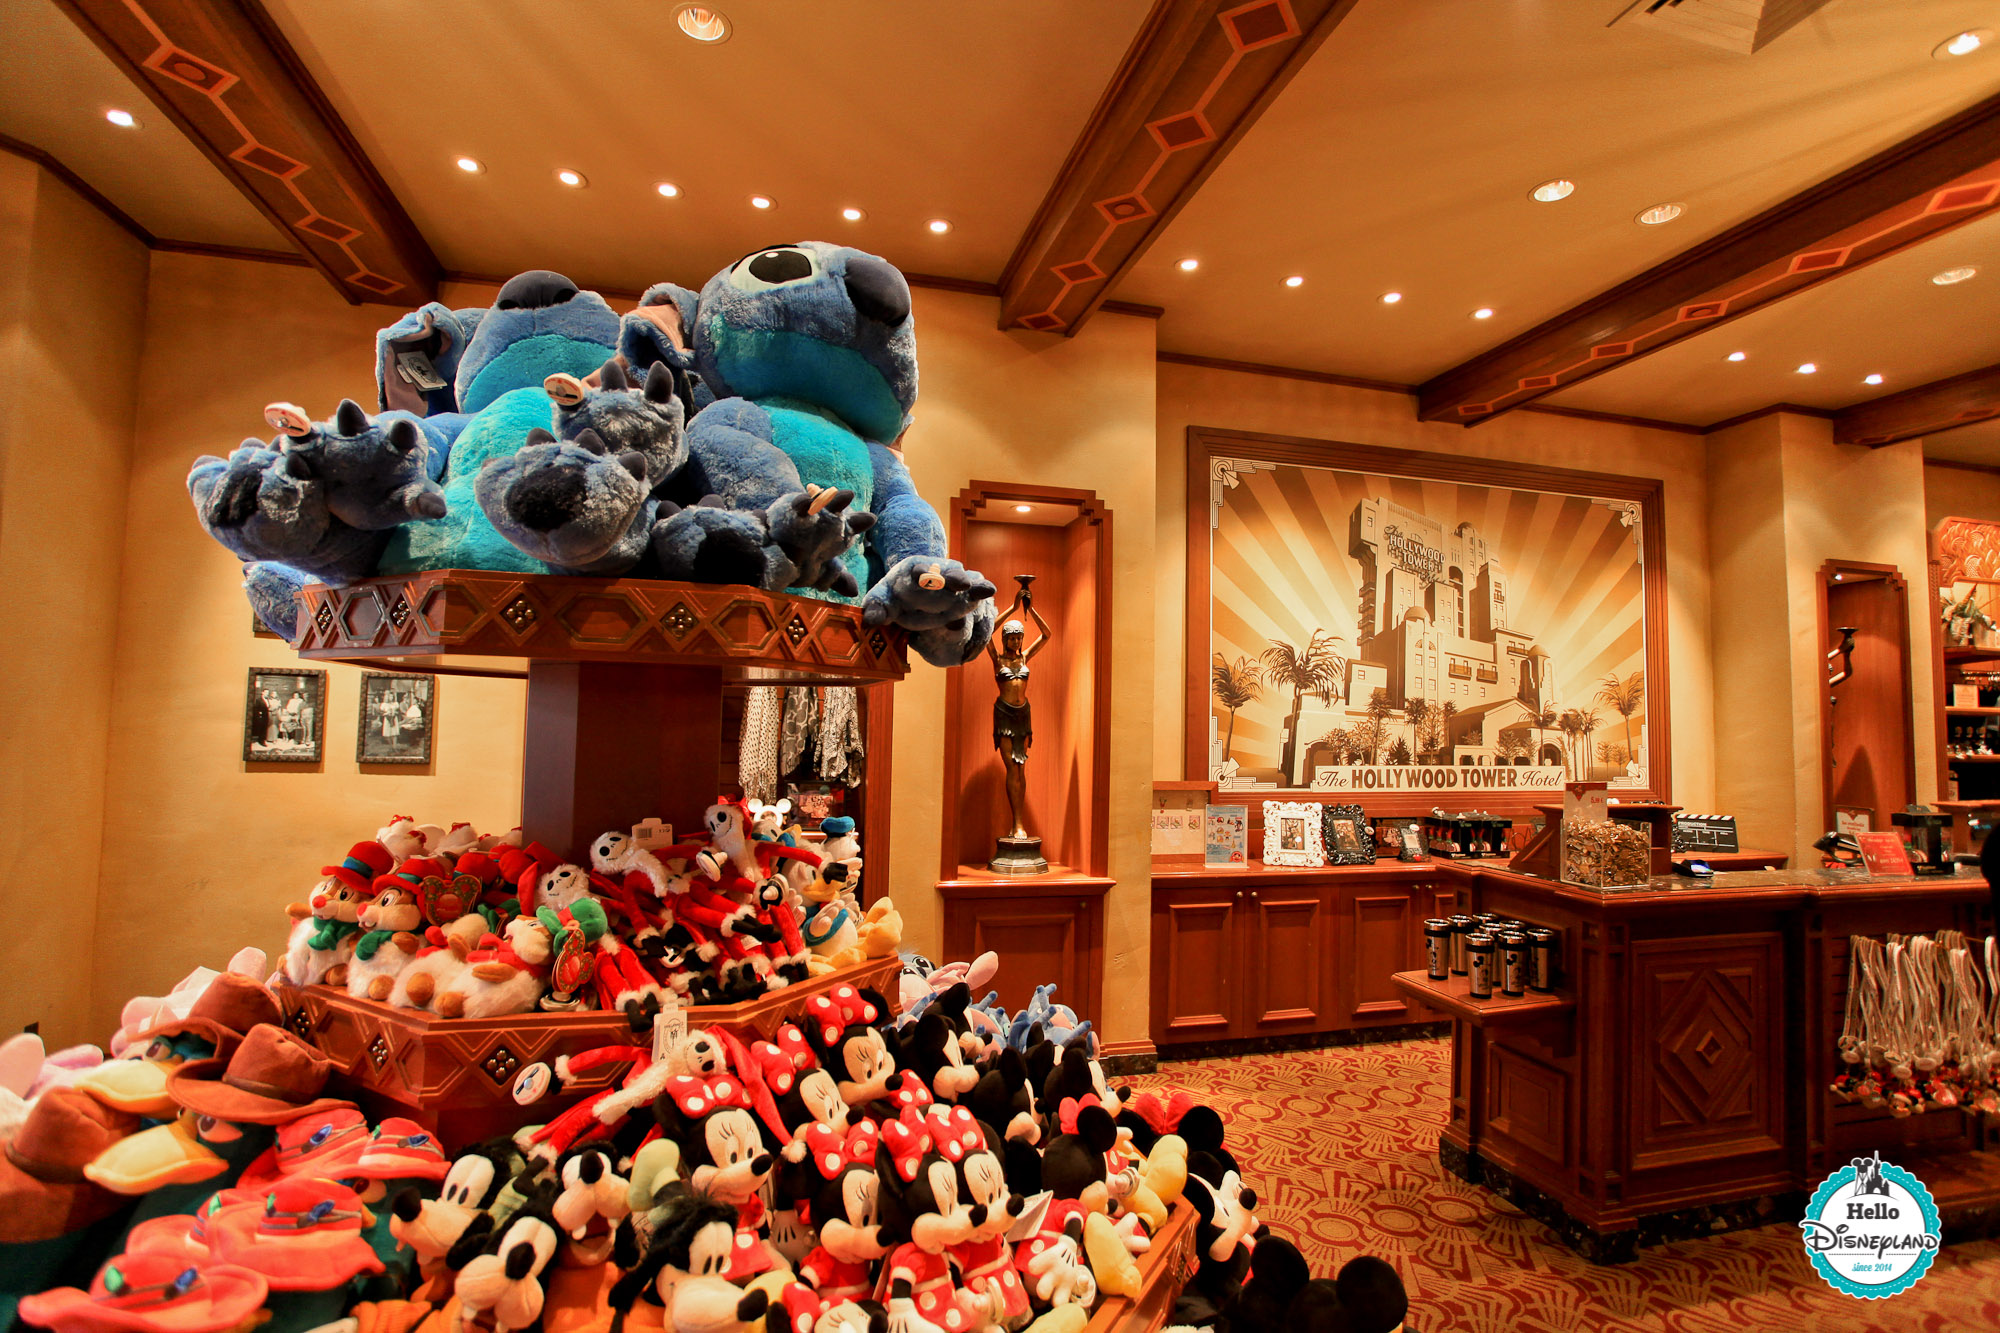 tower-hotel-gifts-disneyland-paris-3